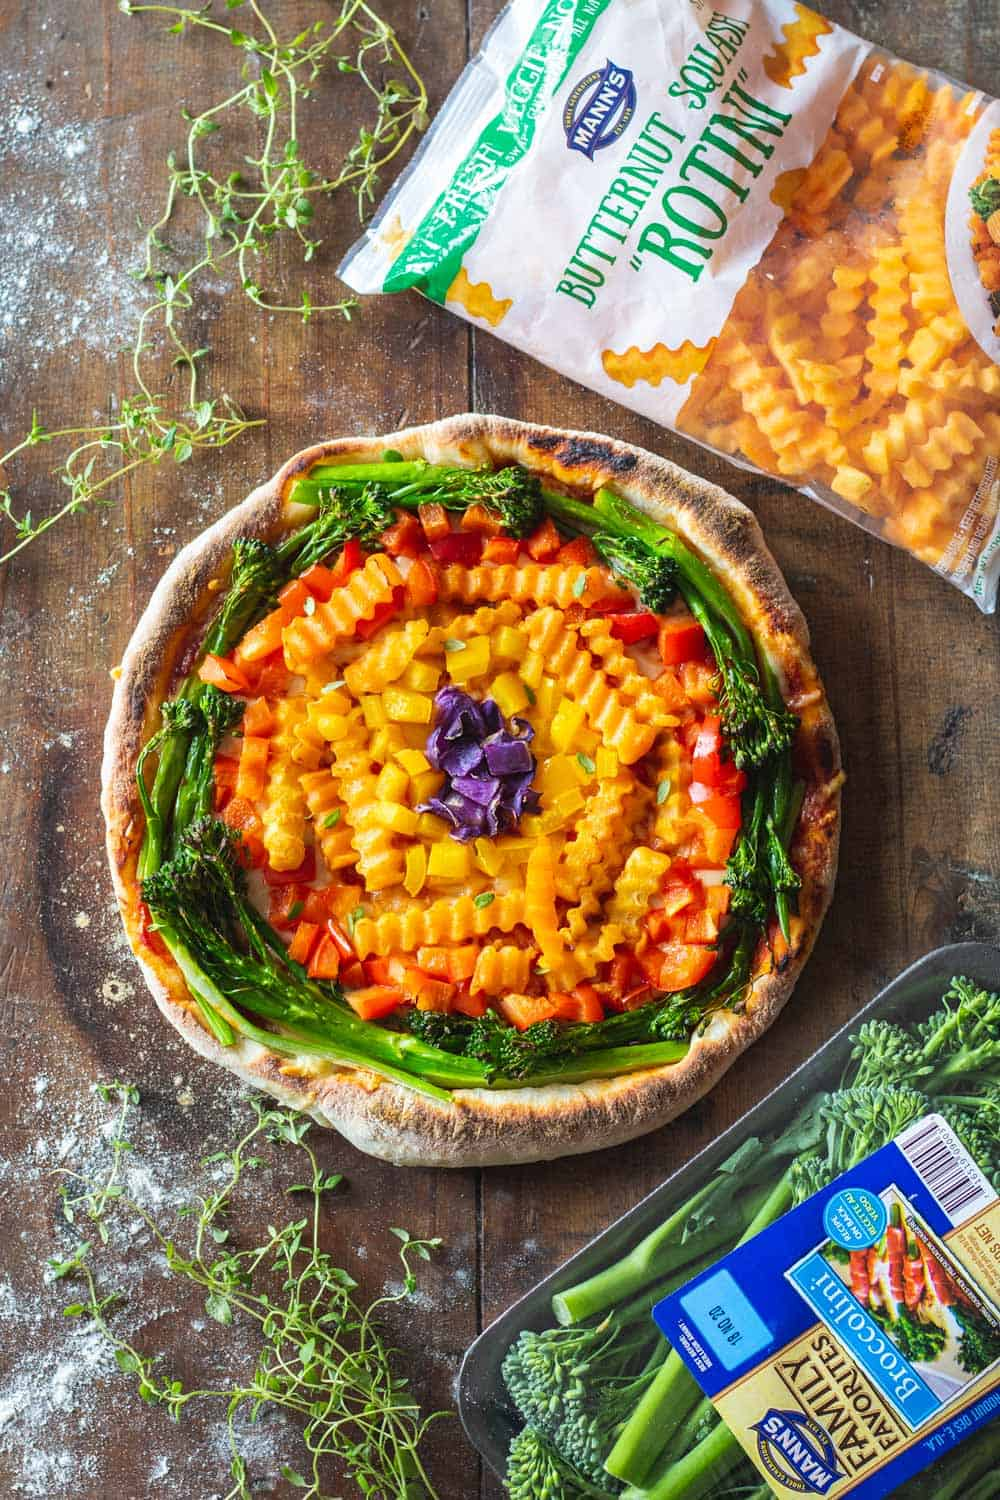 Mann's Broccolini and Mann's Butternut Squash Rotini Bags around rainbow pizza